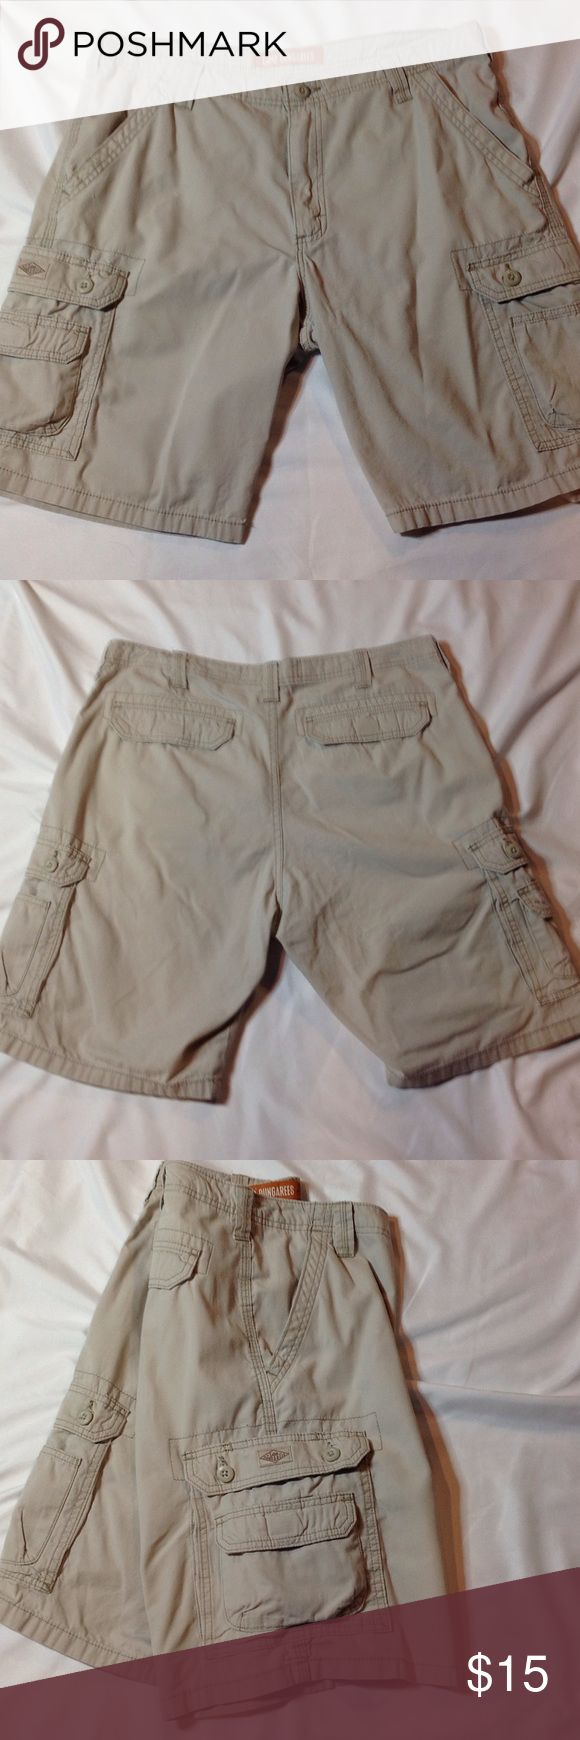 """Lee Dungaree shirts Great condition cargo shorts. Worn only couple times. 100% cotton. 8 pockets!! Length 20"""" inseam 10"""" waist 34. Lee Dungarees Shorts Cargo"""